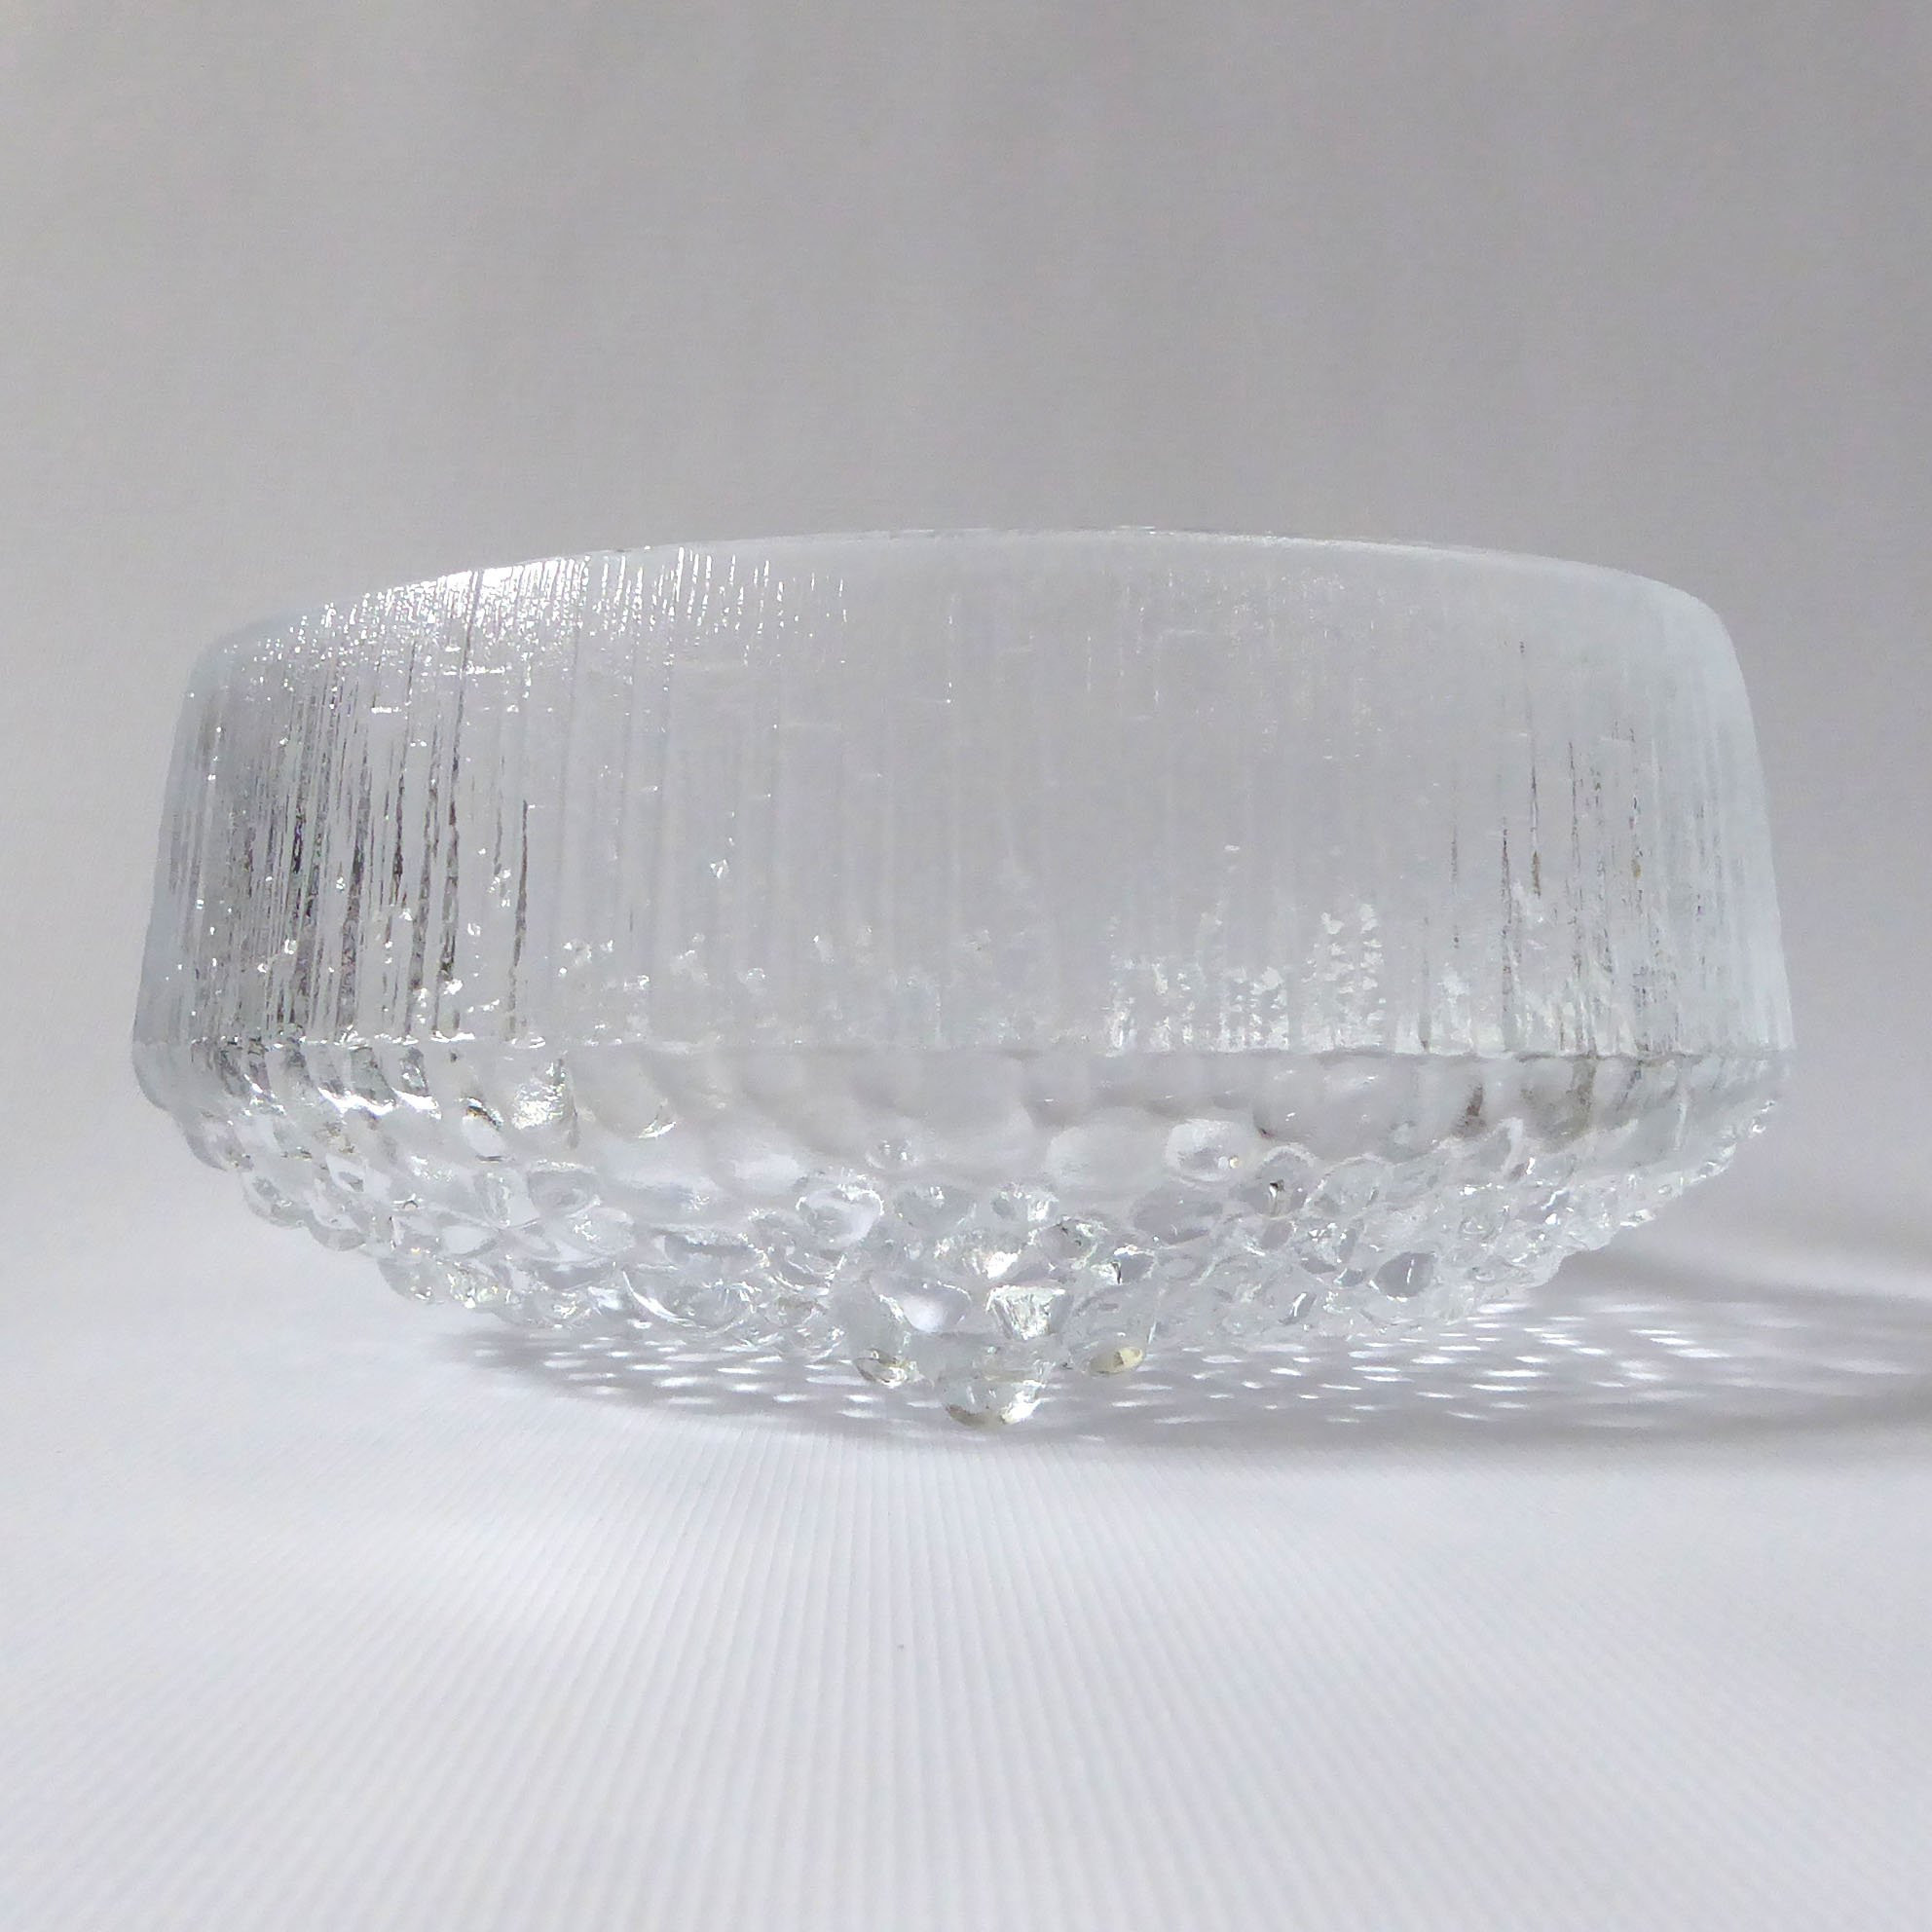 17 Lovely Large Footed Crystal Vase 2021 free download large footed crystal vase of tapio wirkkala iittala ultima thule large glass fruit salad etsy with dc29fc294c28ezoom